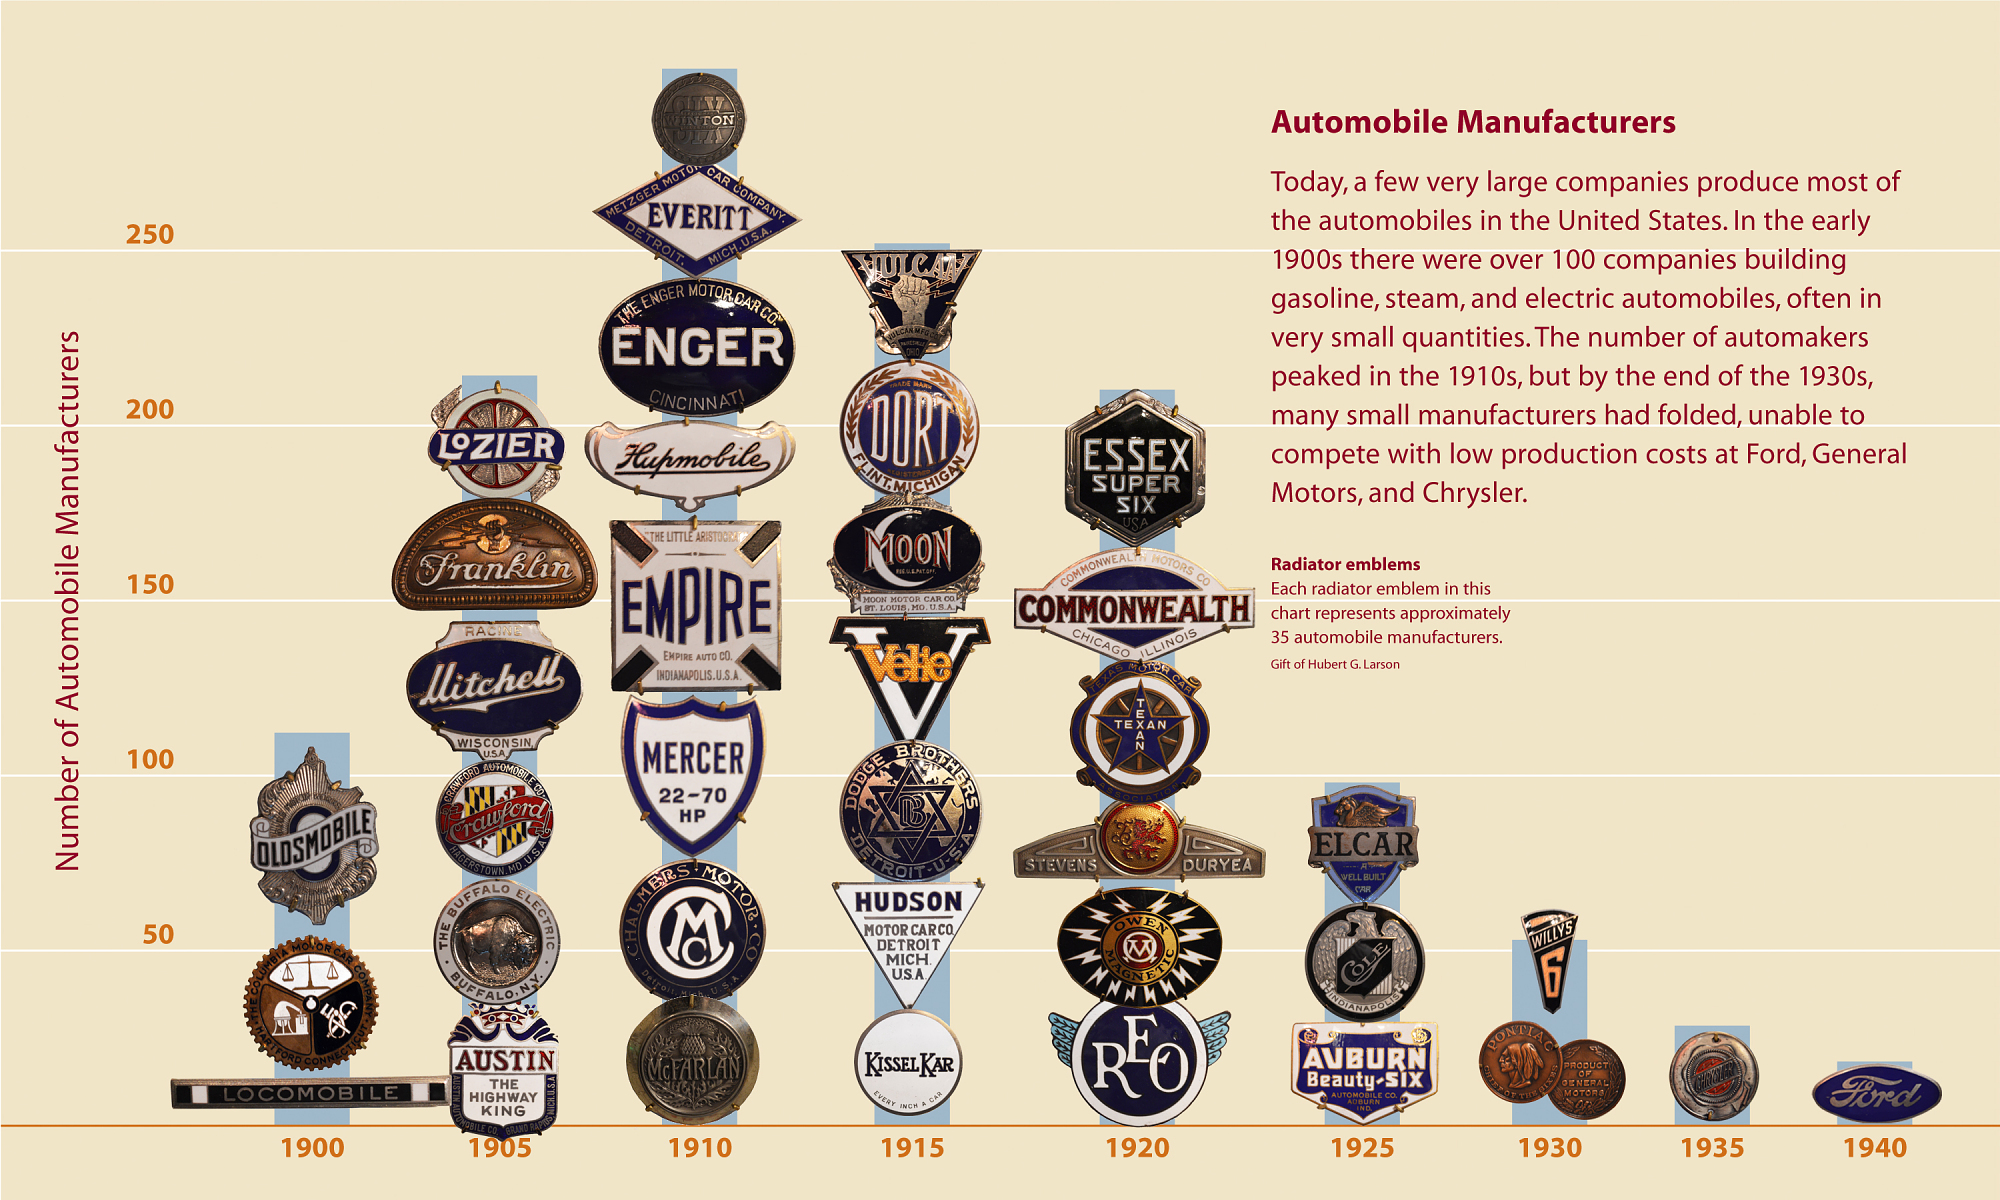 Graph of automobile radiator emblems representing automobile manufacturers during the early 20th century.